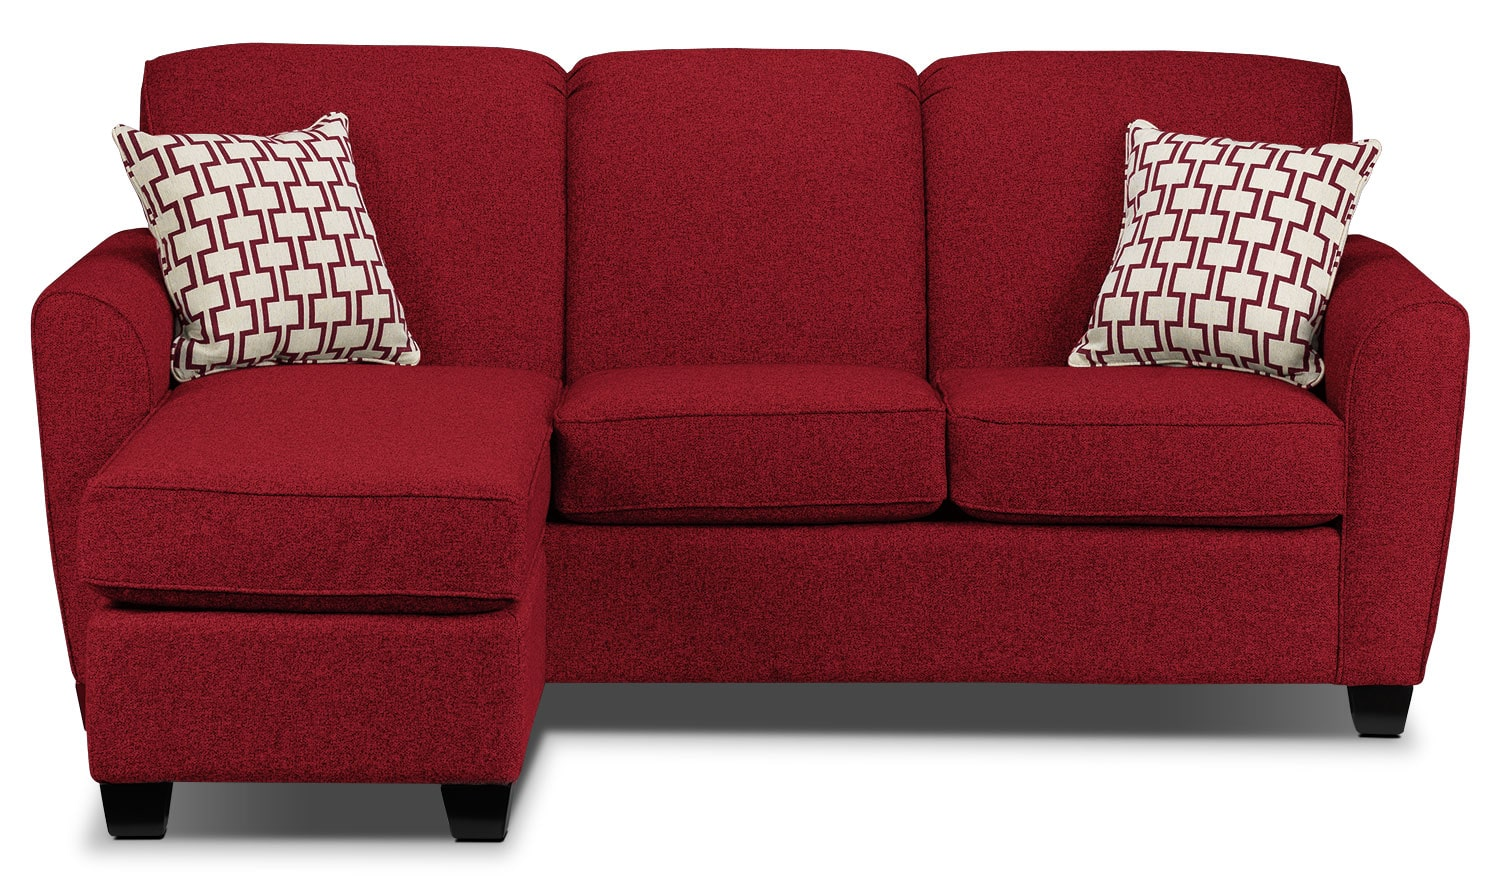 ashby chaise sofa  red  leon's - click to change image